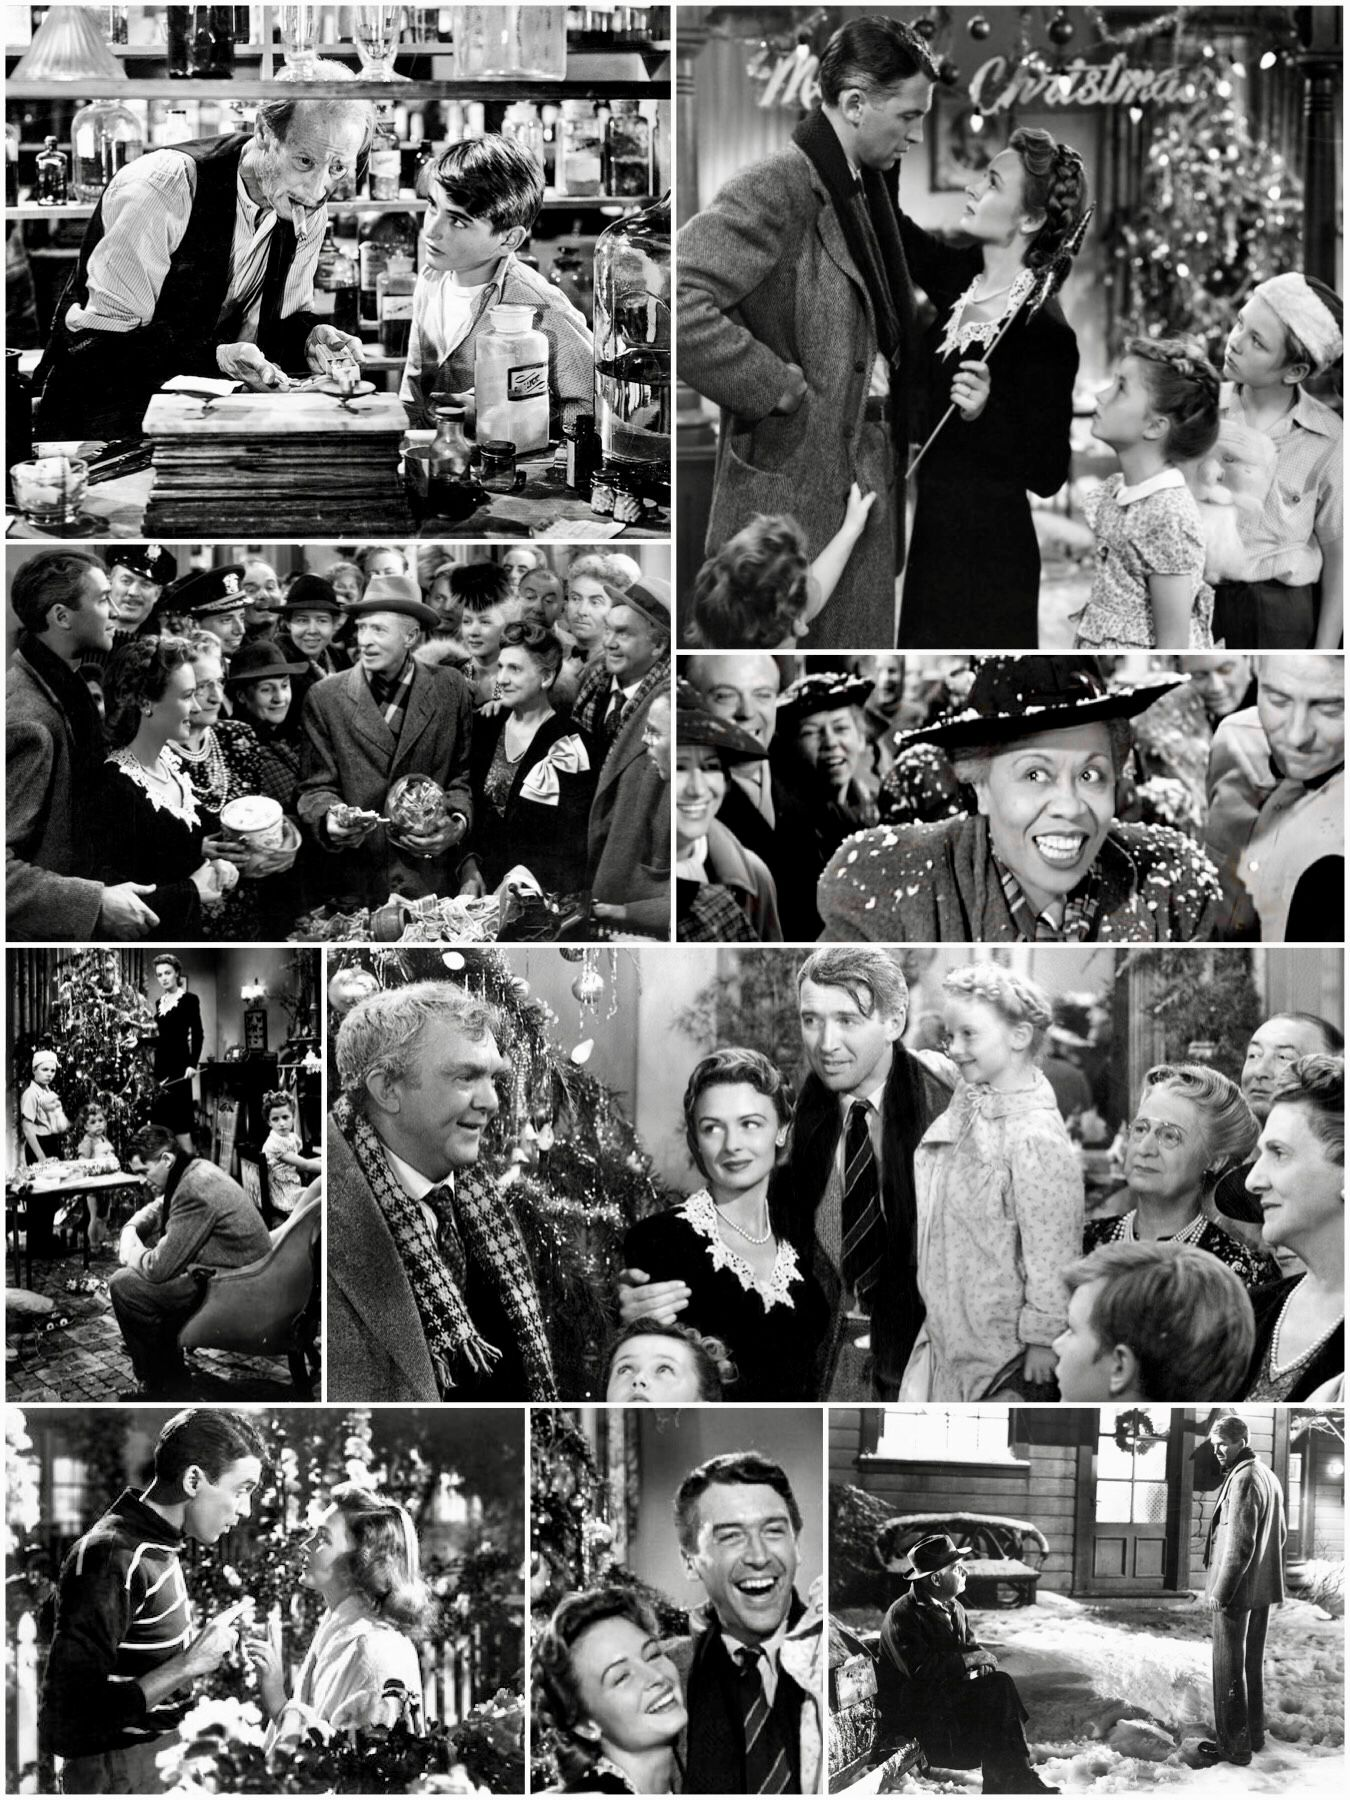 frank capra s it s a wonderful life rko 1946 james stewart as